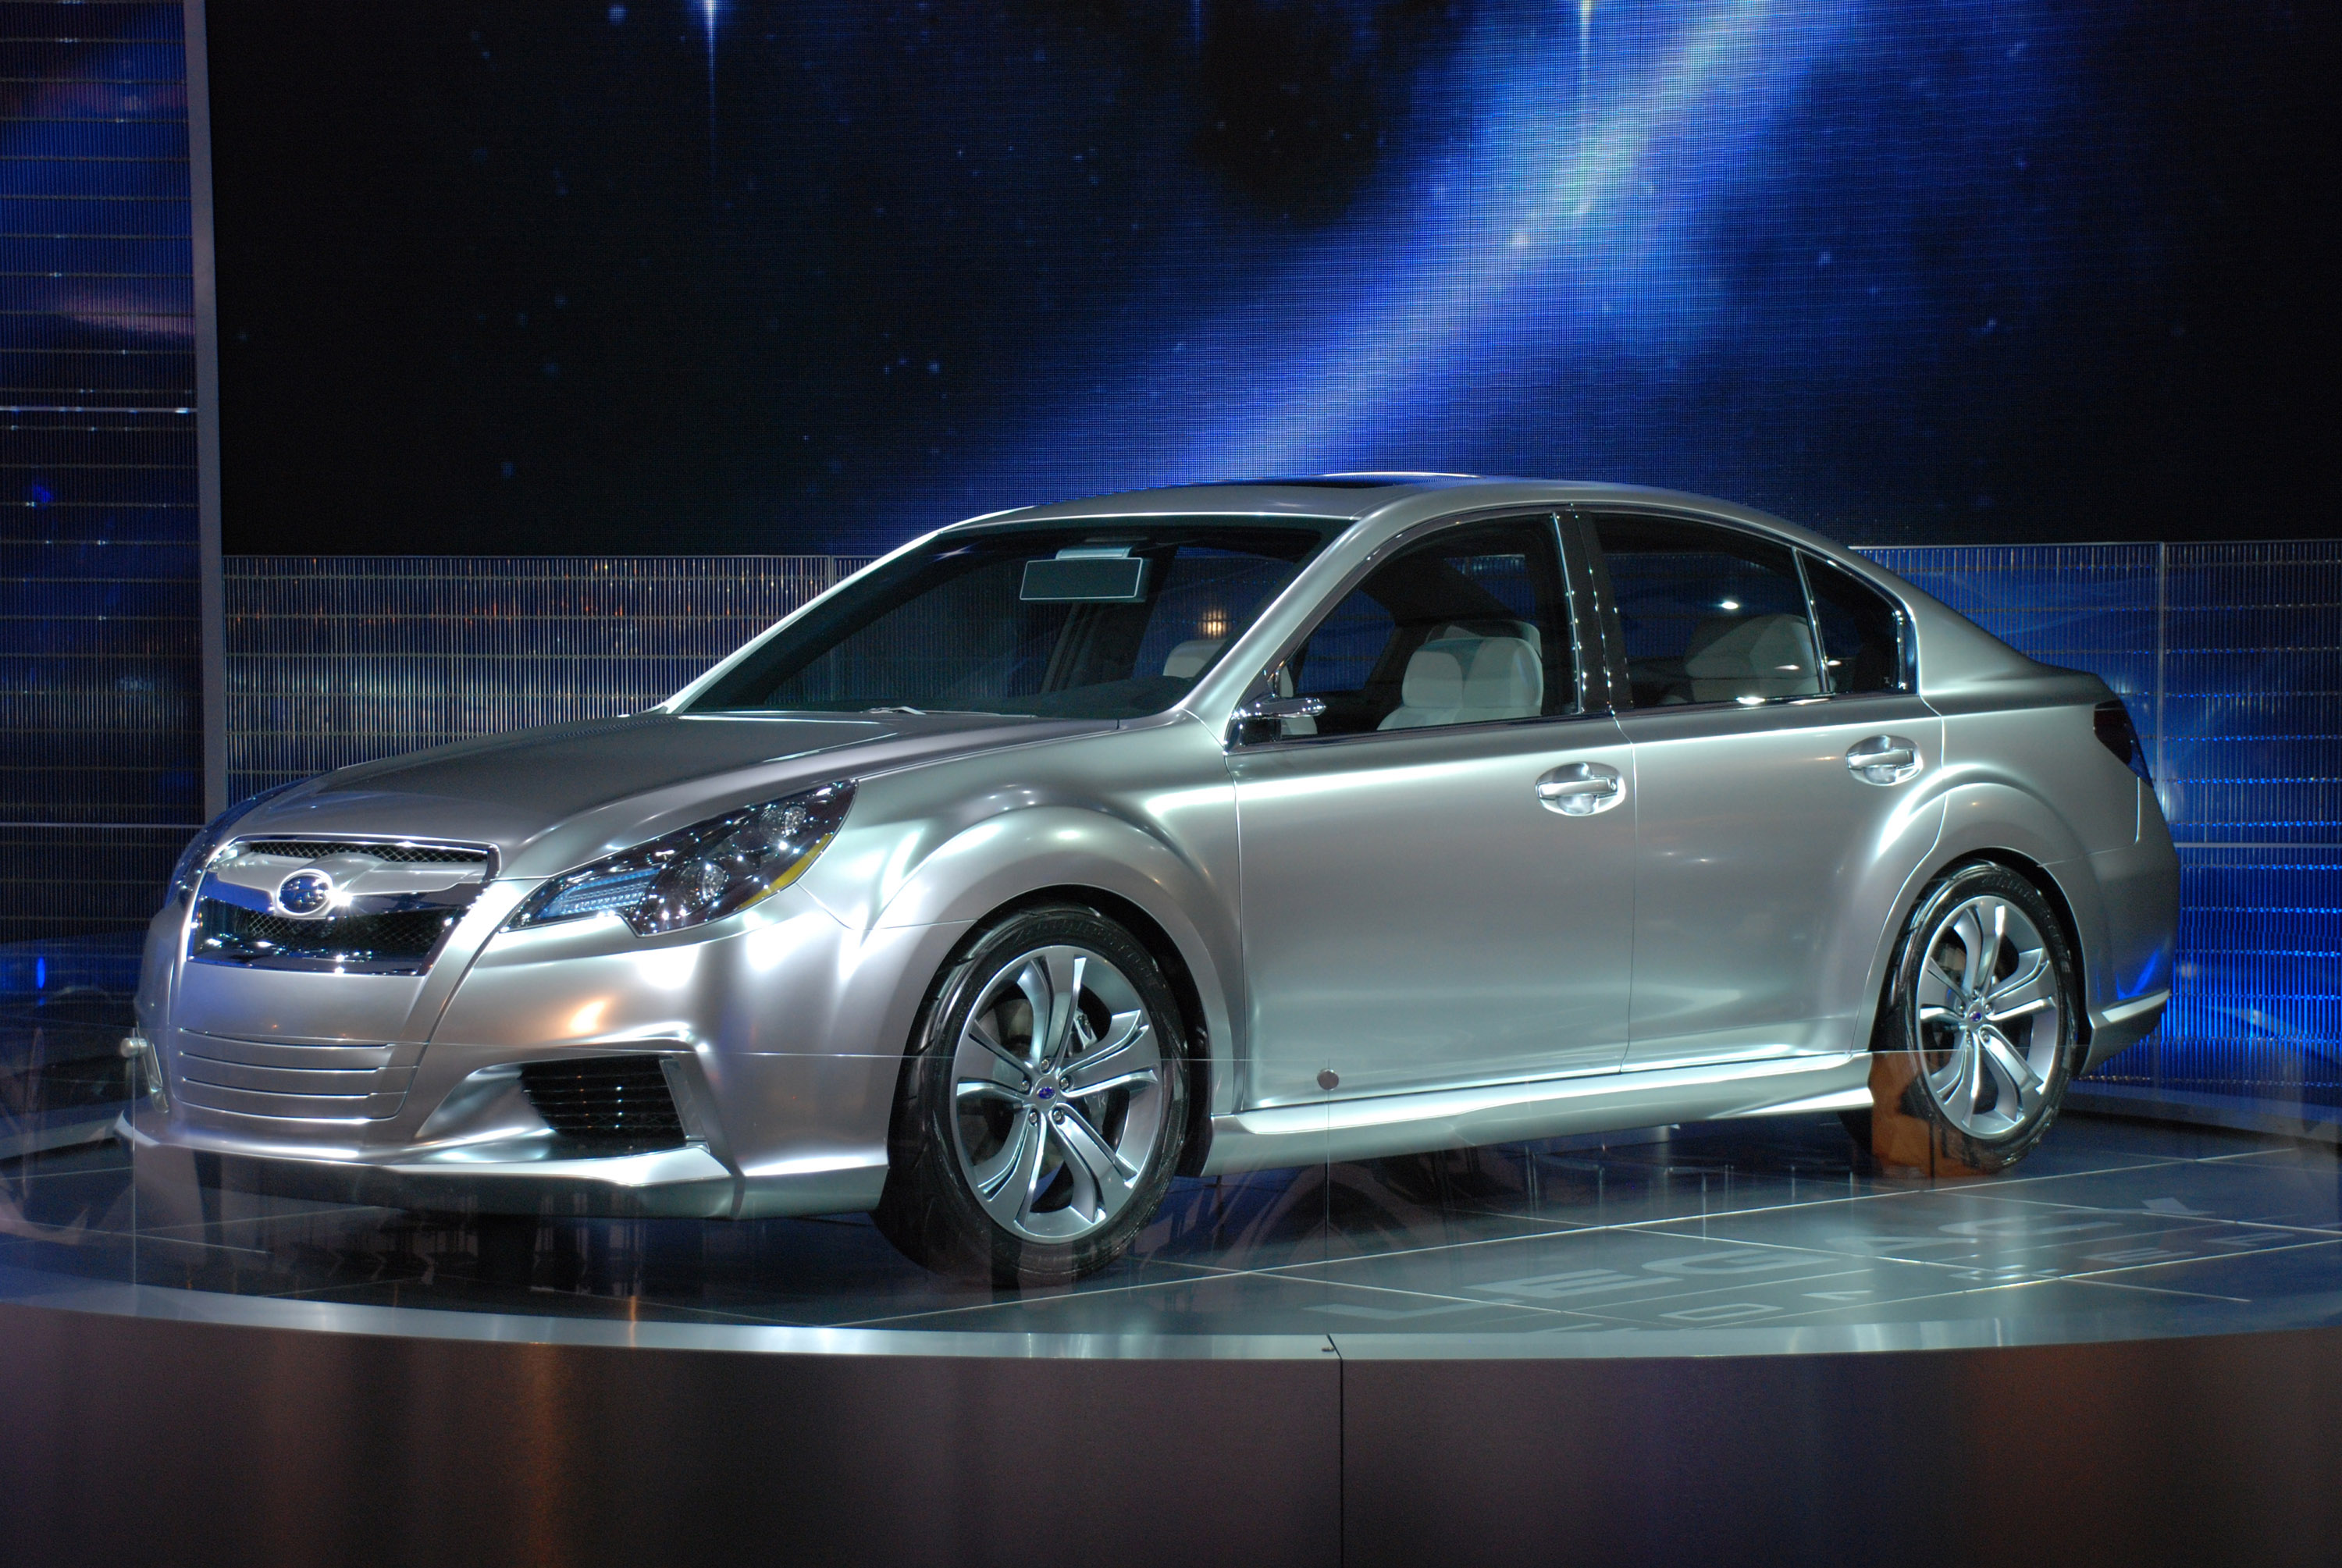 Subaru legacy concept subaru legacy concept 21 of 21 vanachro Image collections